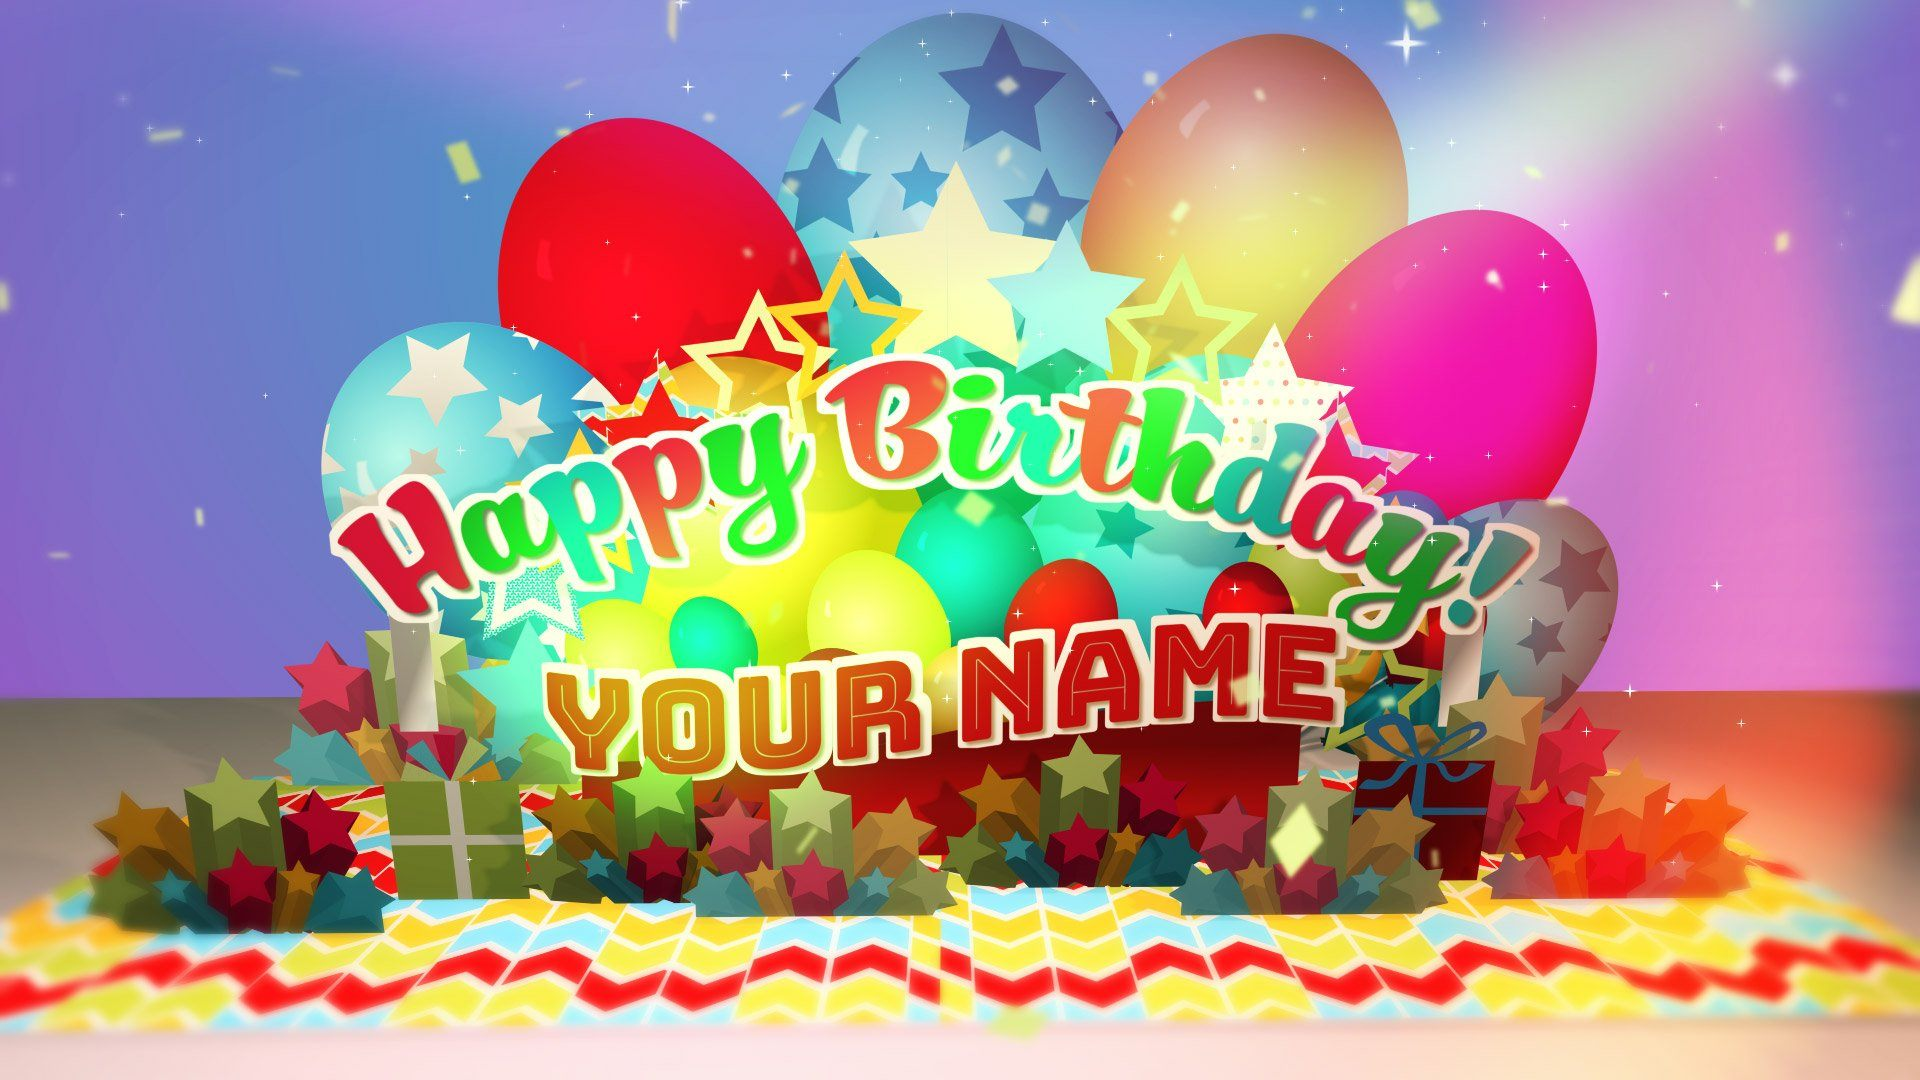 Premiere Pro Mogrt - Birthday Pop Up Card Title Mogrt